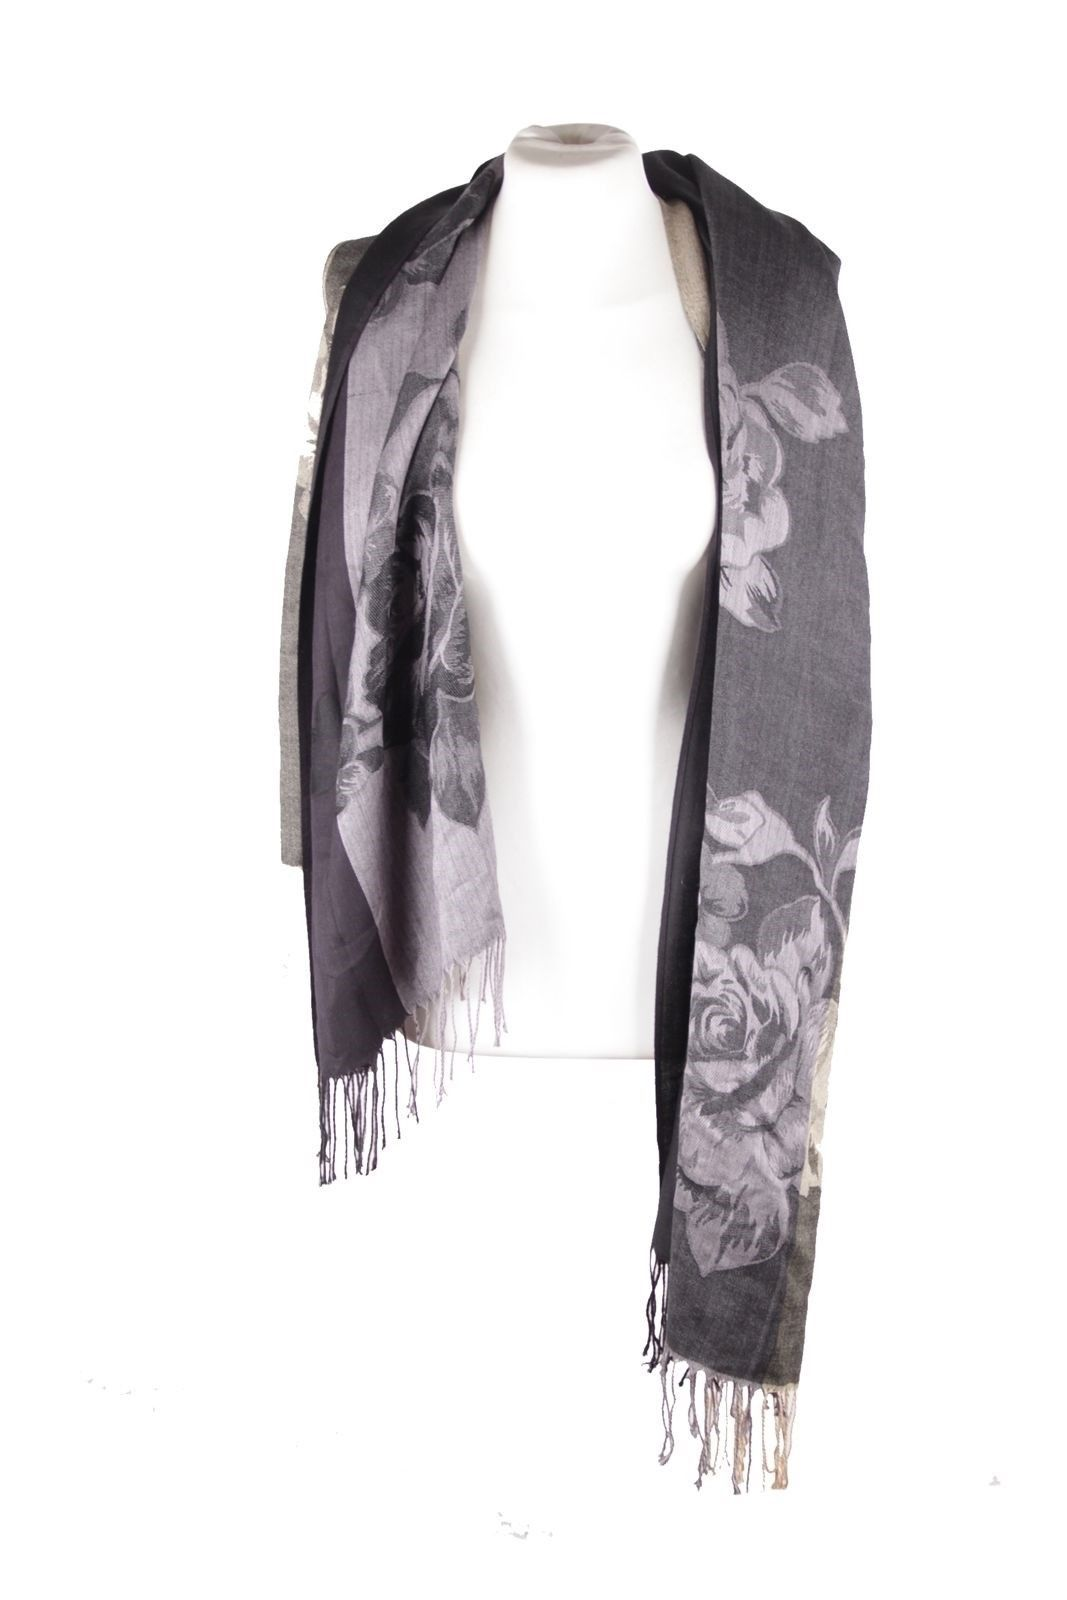 Primary image for COVERI COLLECTION Italian VINTAGE Black & Beige Viscose SCARF Stole w/FRINGES QS